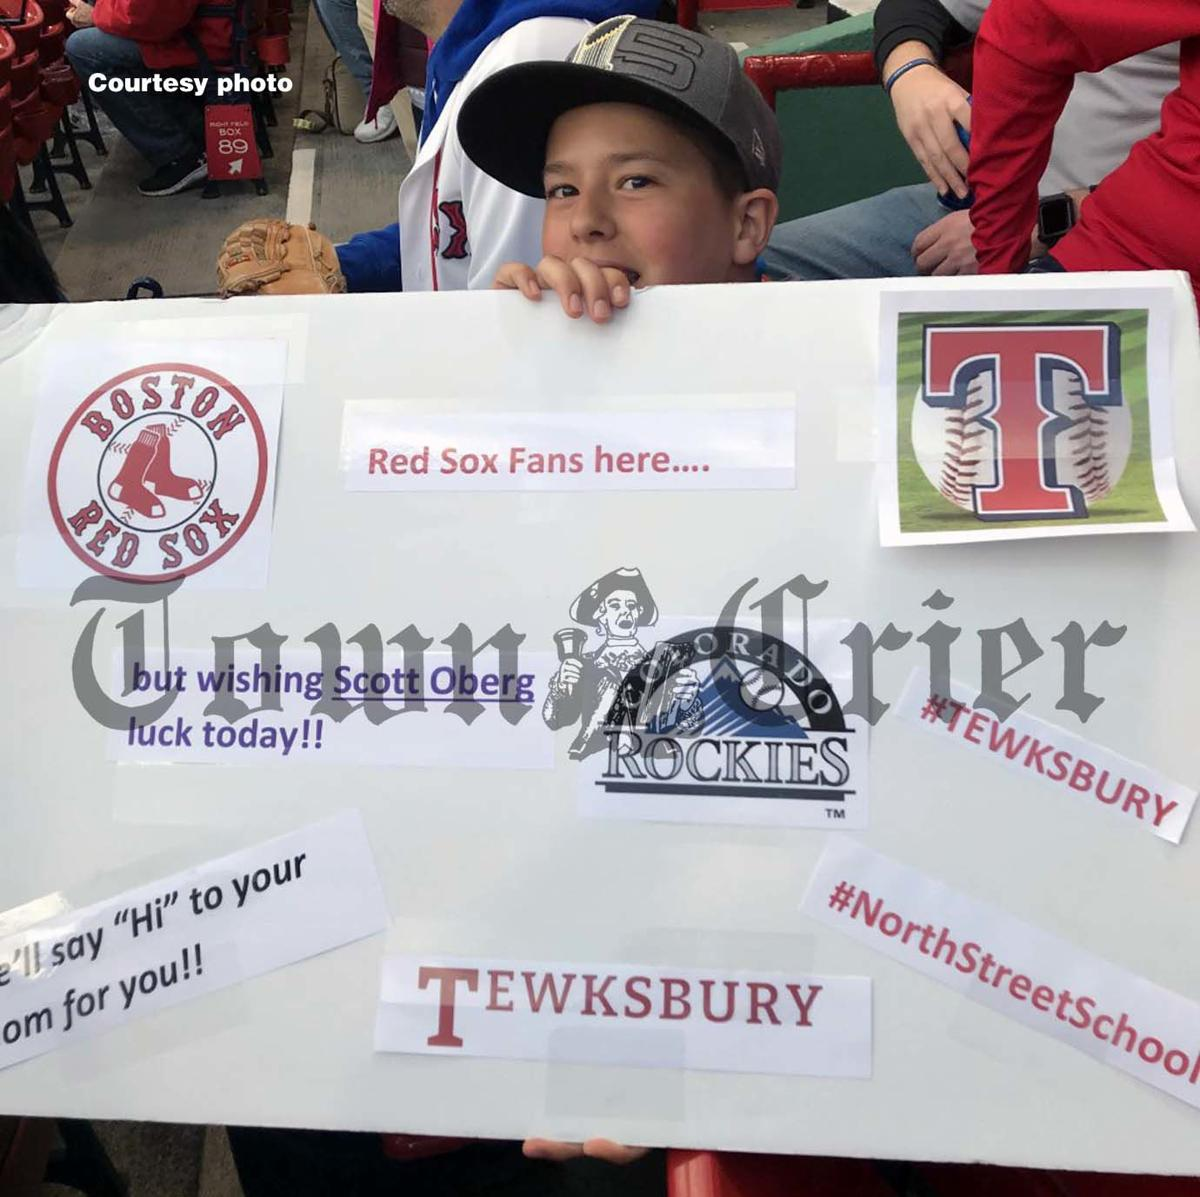 Tewksbury locals show support for Oberg